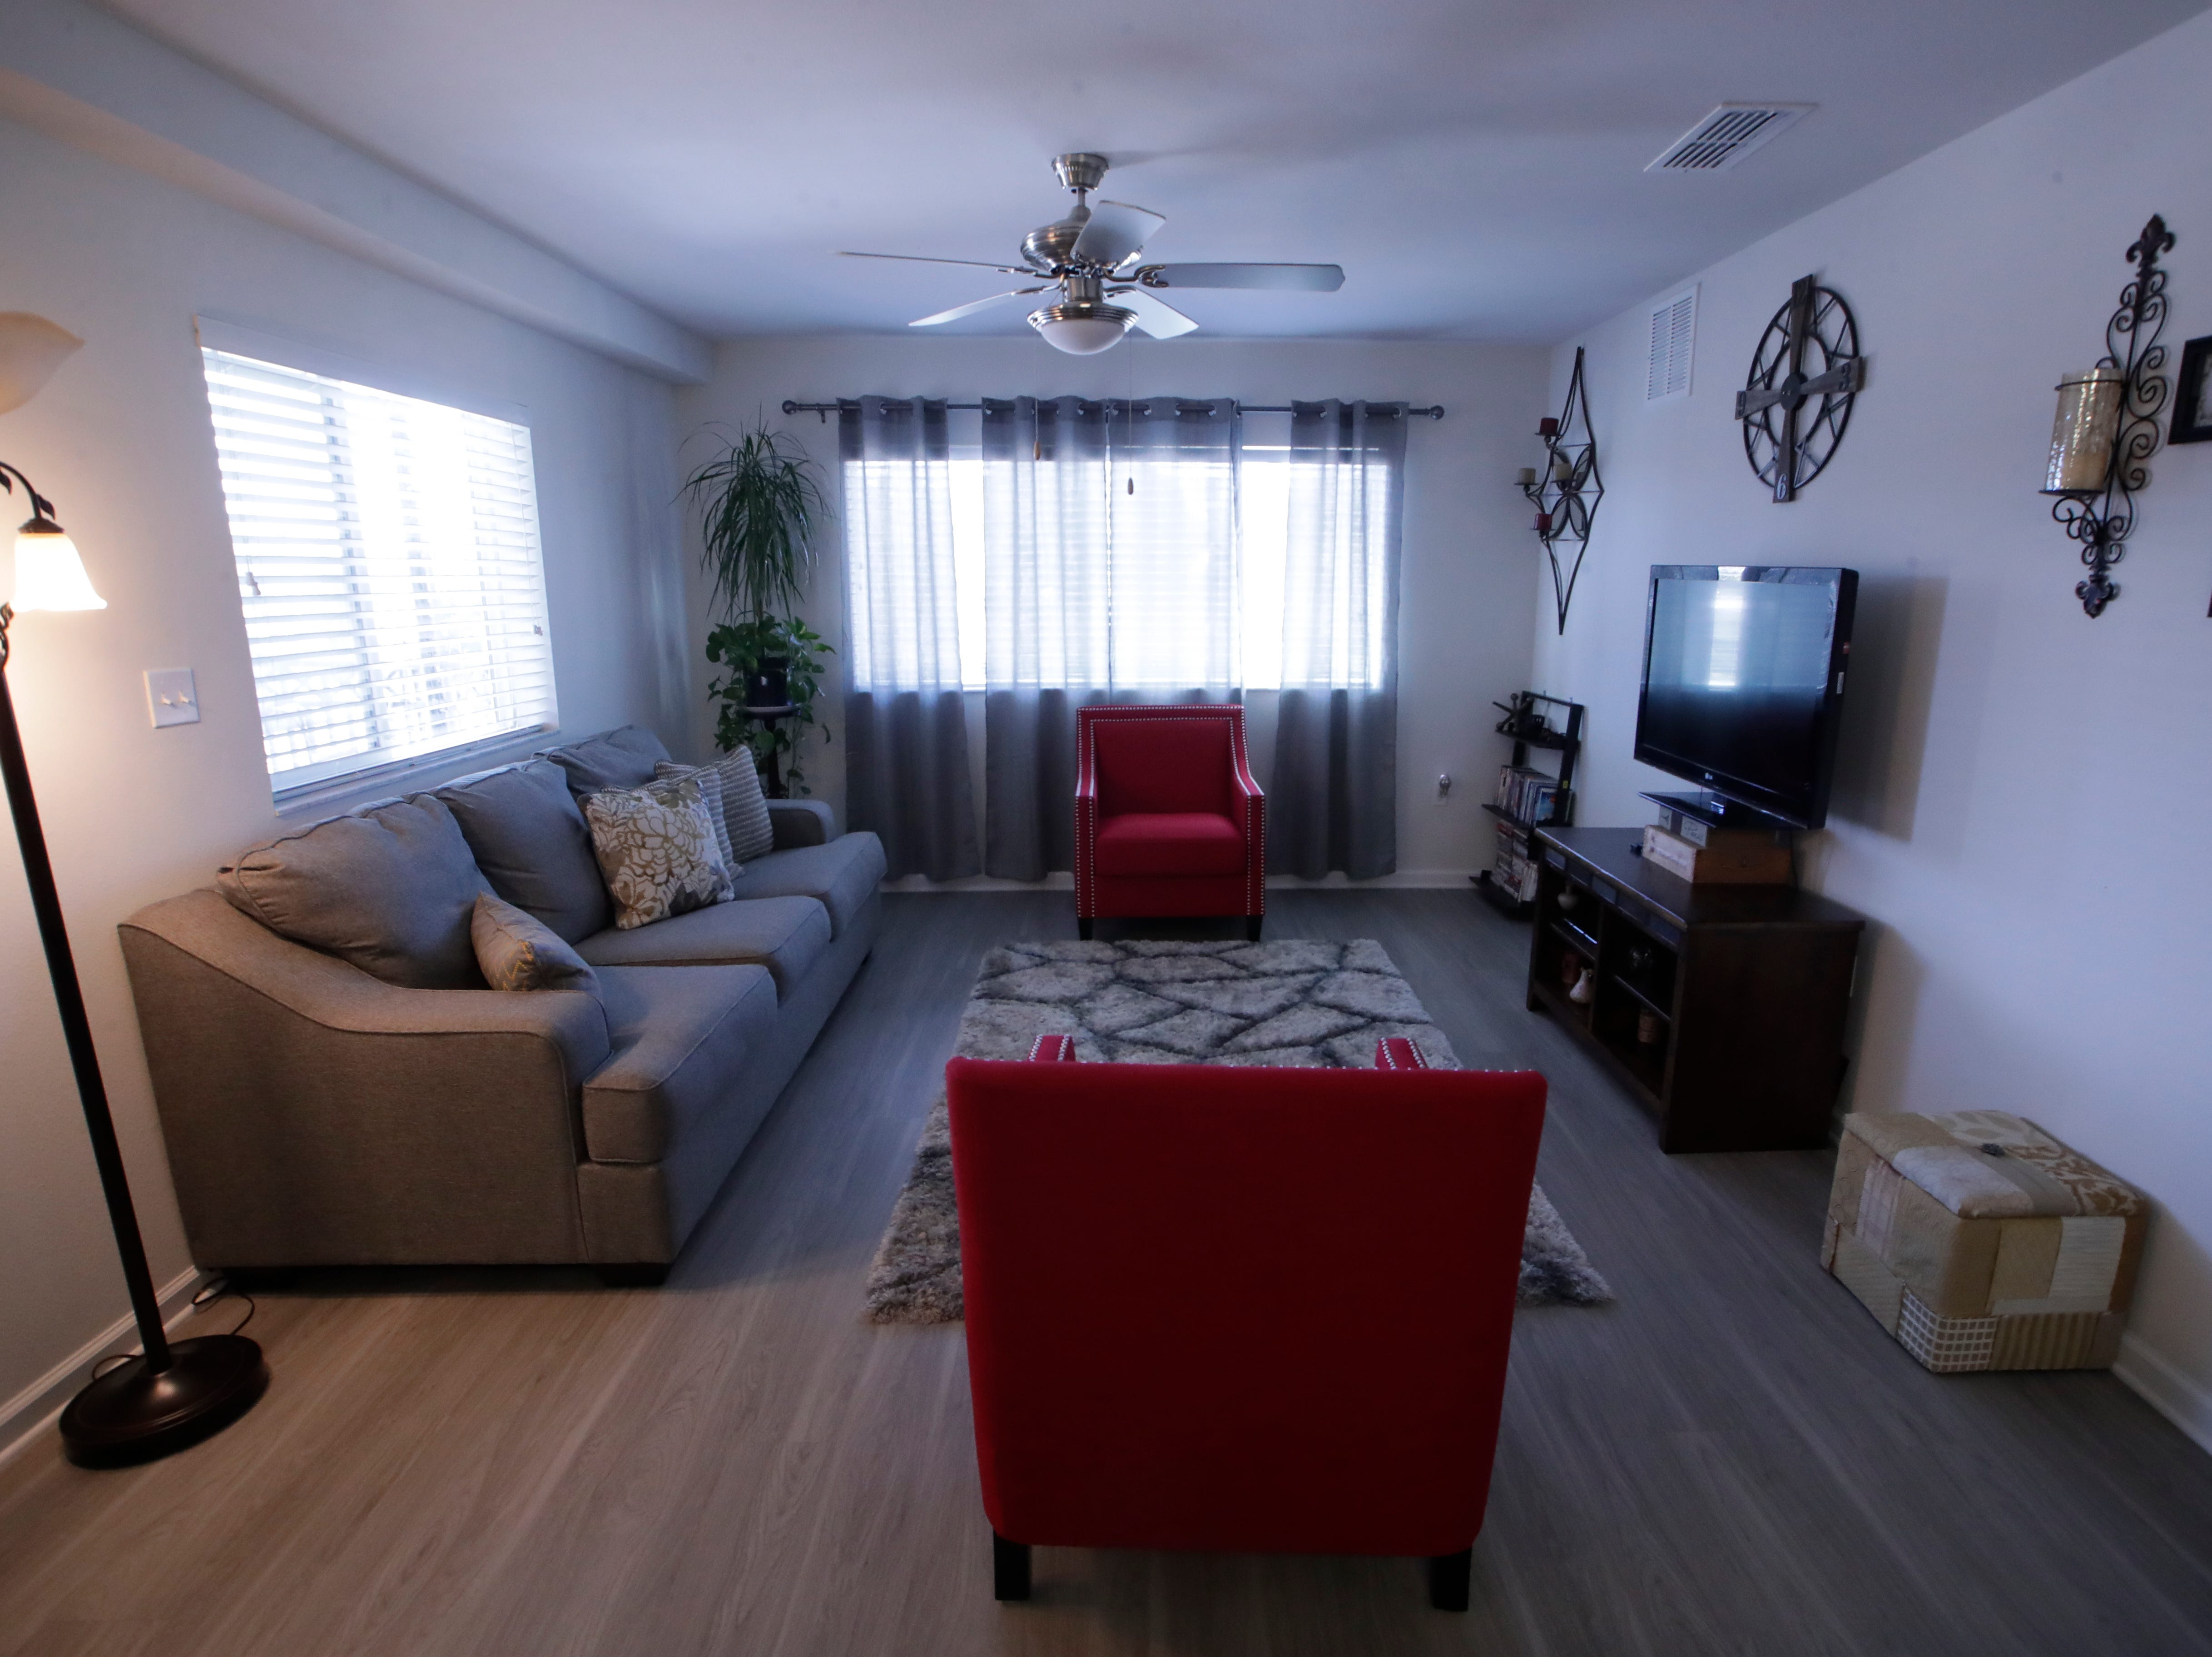 One of the floor plans at Casañas Village Apartments at Frenchtown Square includes three bedrooms and two bathrooms. All apartments include hard floors and similar finishings. One and two bedroom floor plans are also available.